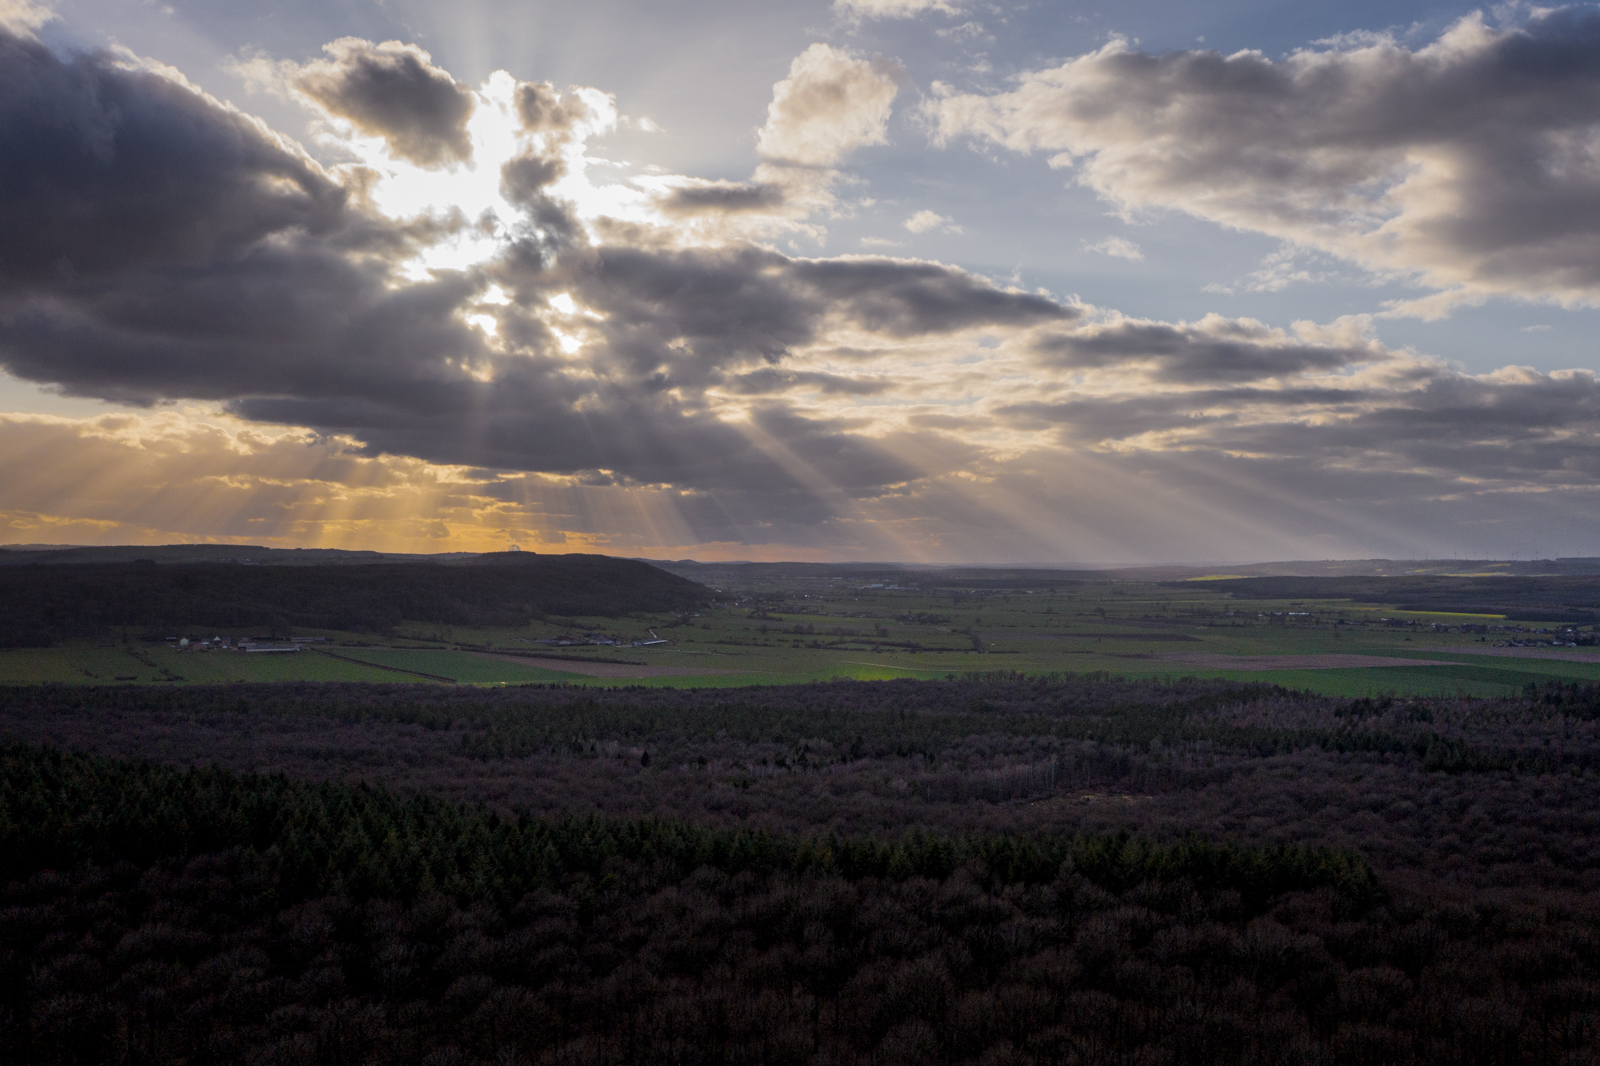 Rays of light breaking through clouds over Wallonia, Belgium